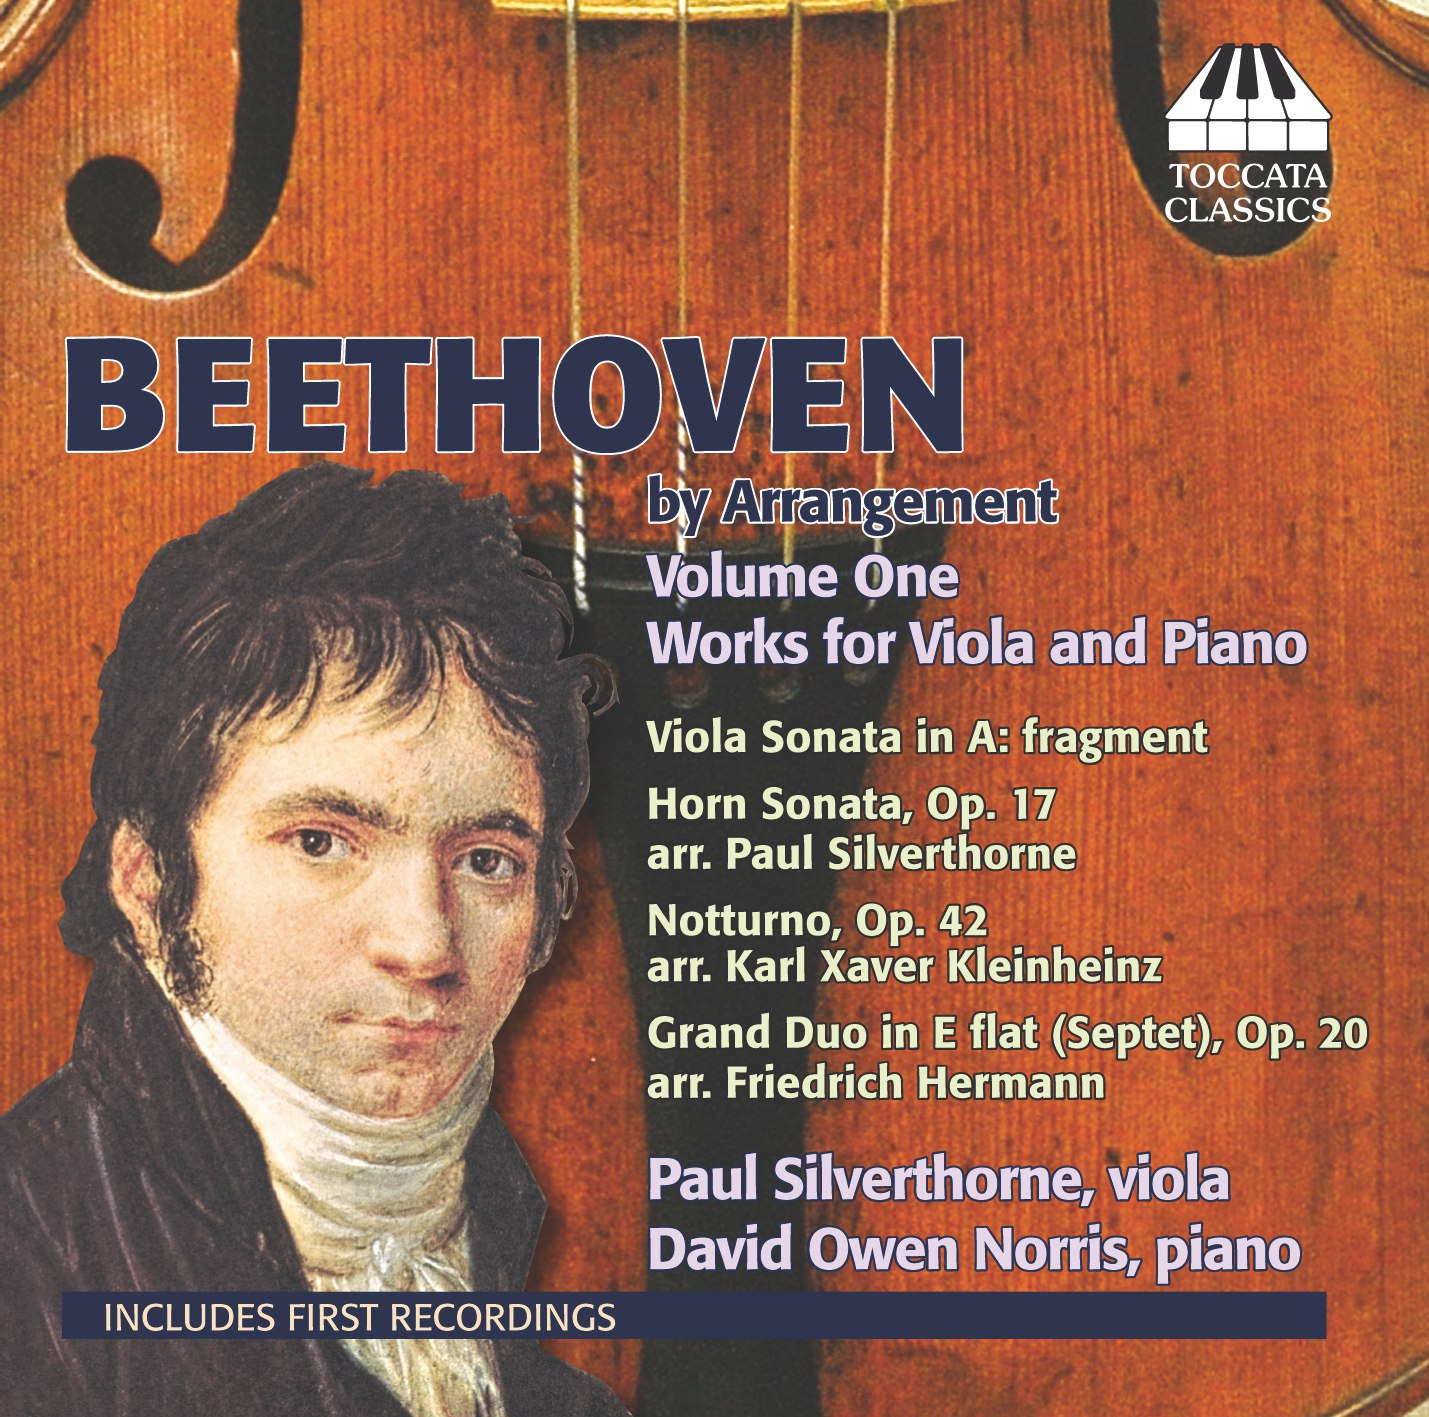 Beethoven by Arrangement